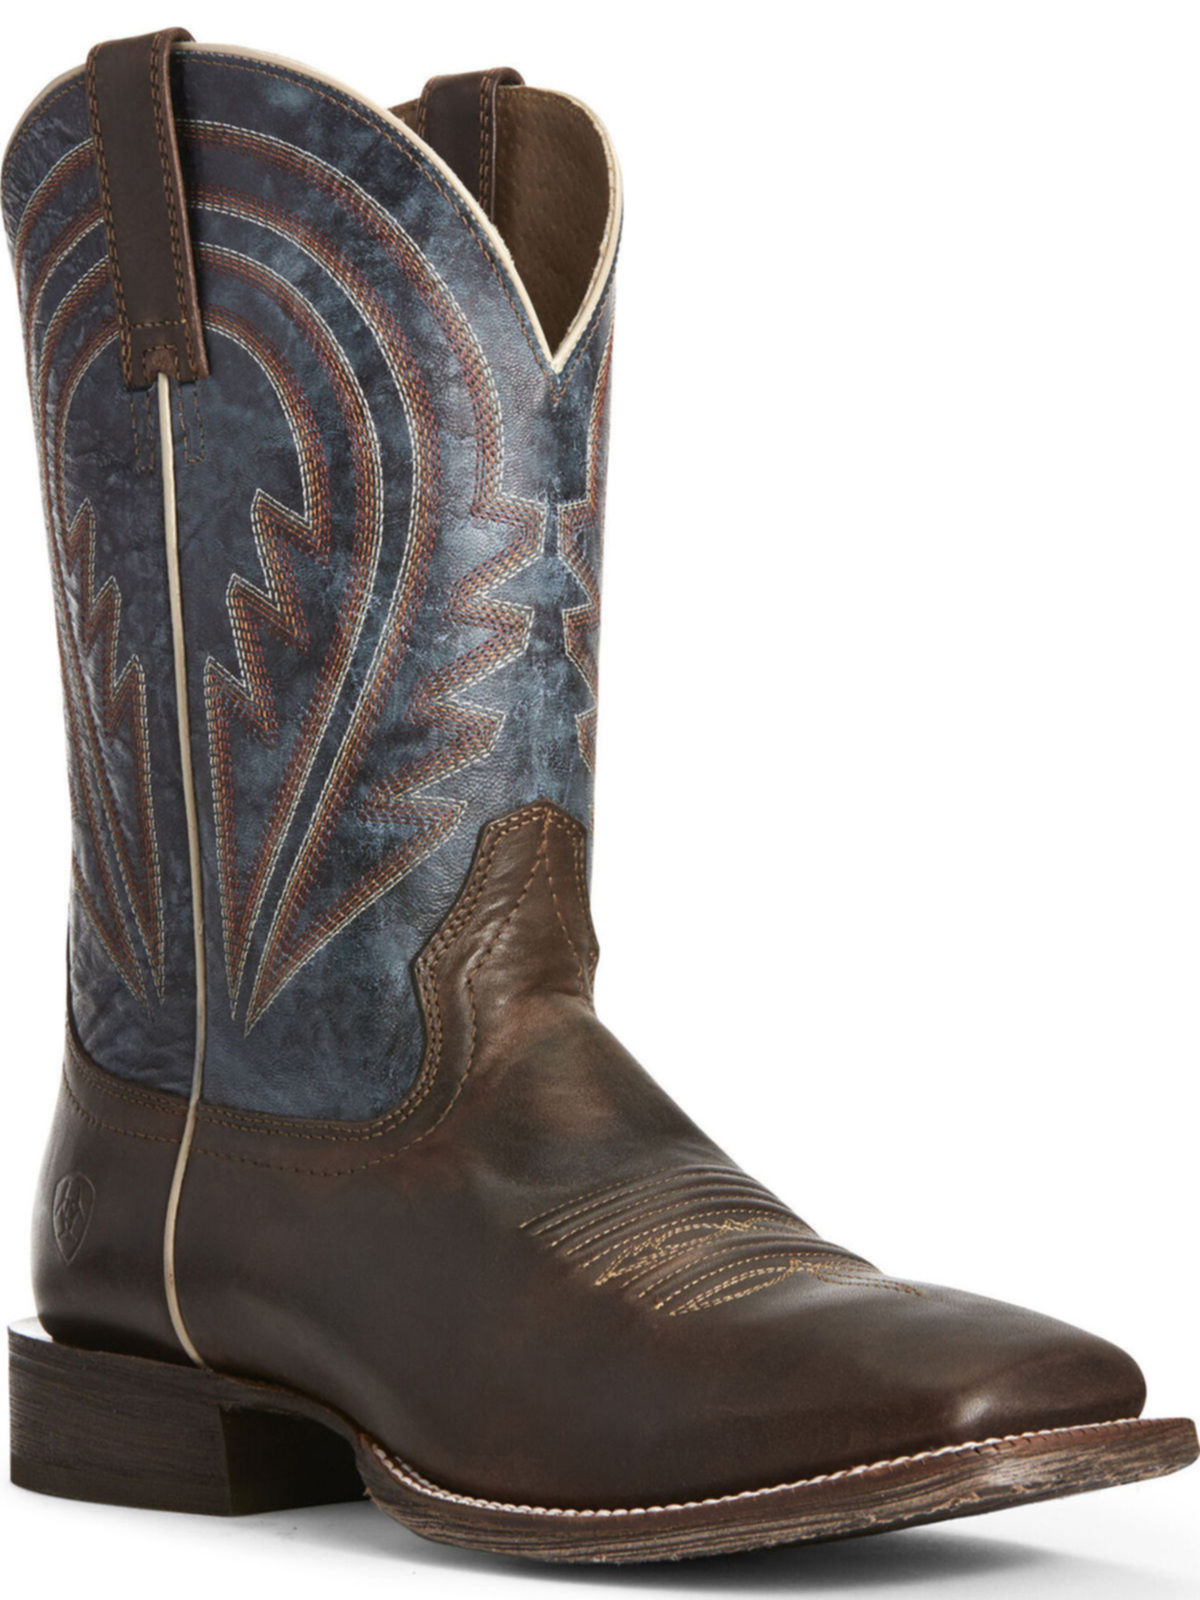 c91de7a91 BootAmerica   Ariat Mens Circuit Herd Boss Sweet Molasses Cowboy Boot  10027195